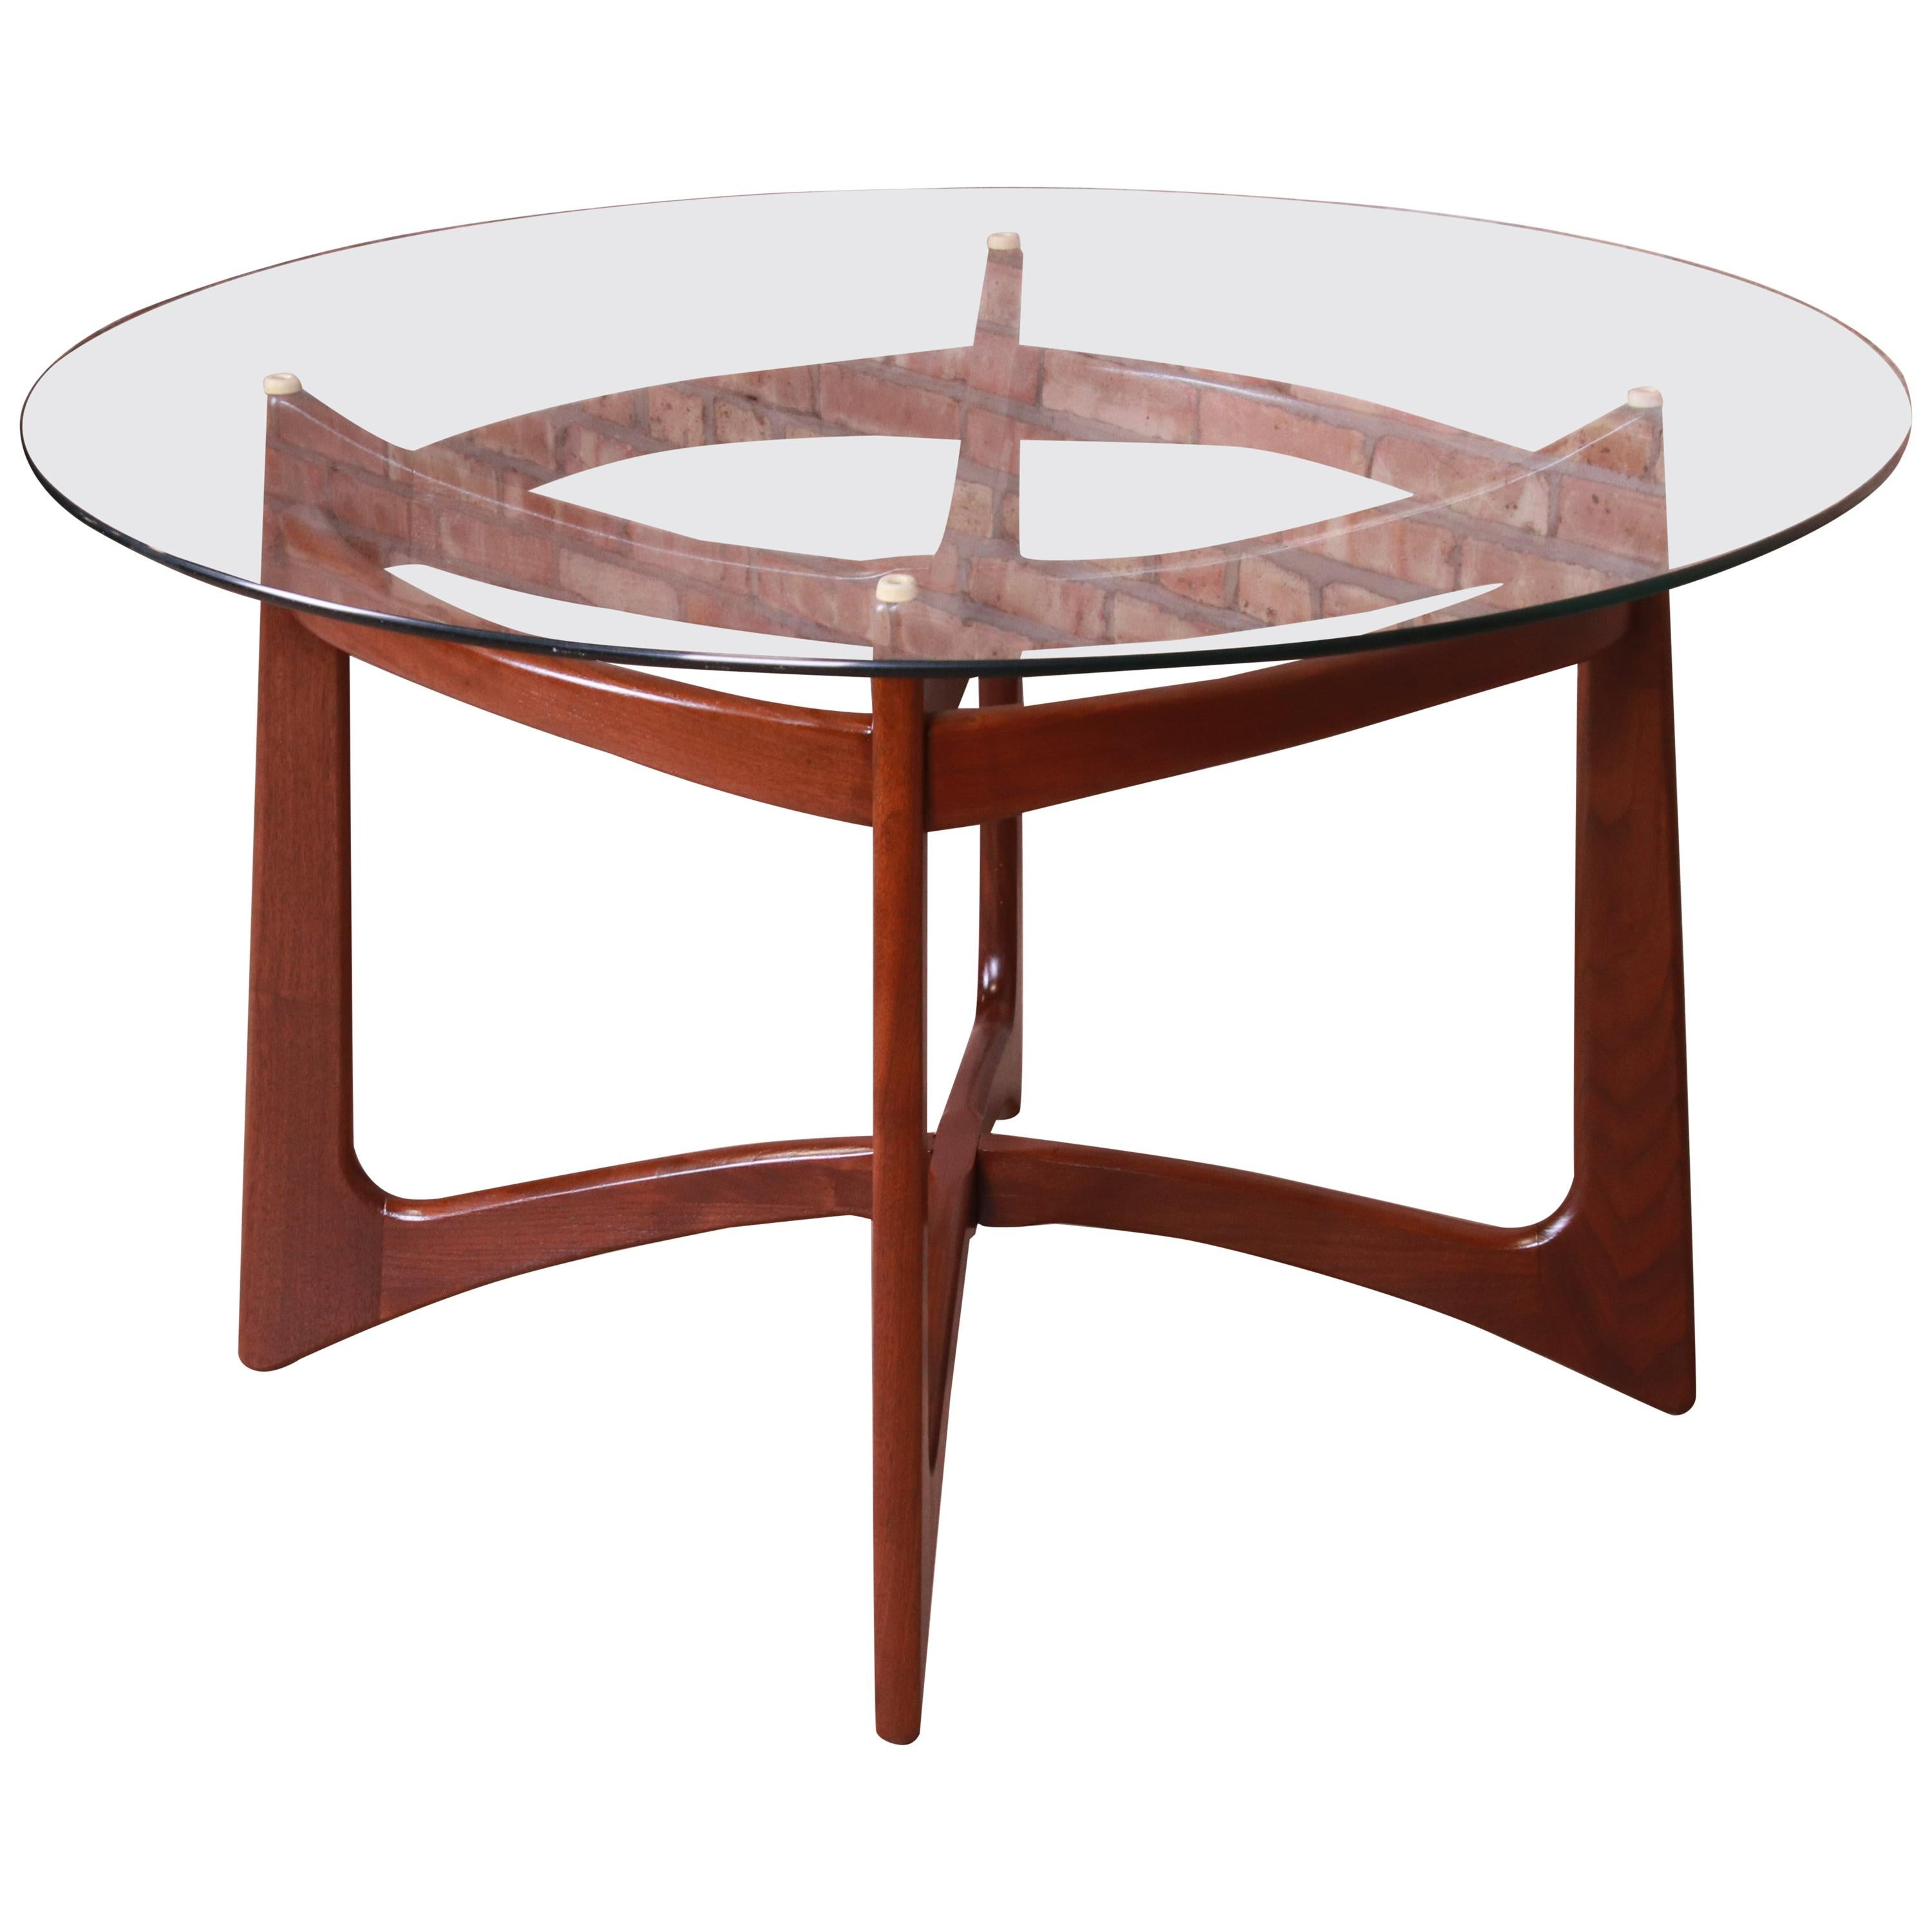 Adrian Pearsall Sculpted Walnut Glass Top Dining Table, Newly Refinished